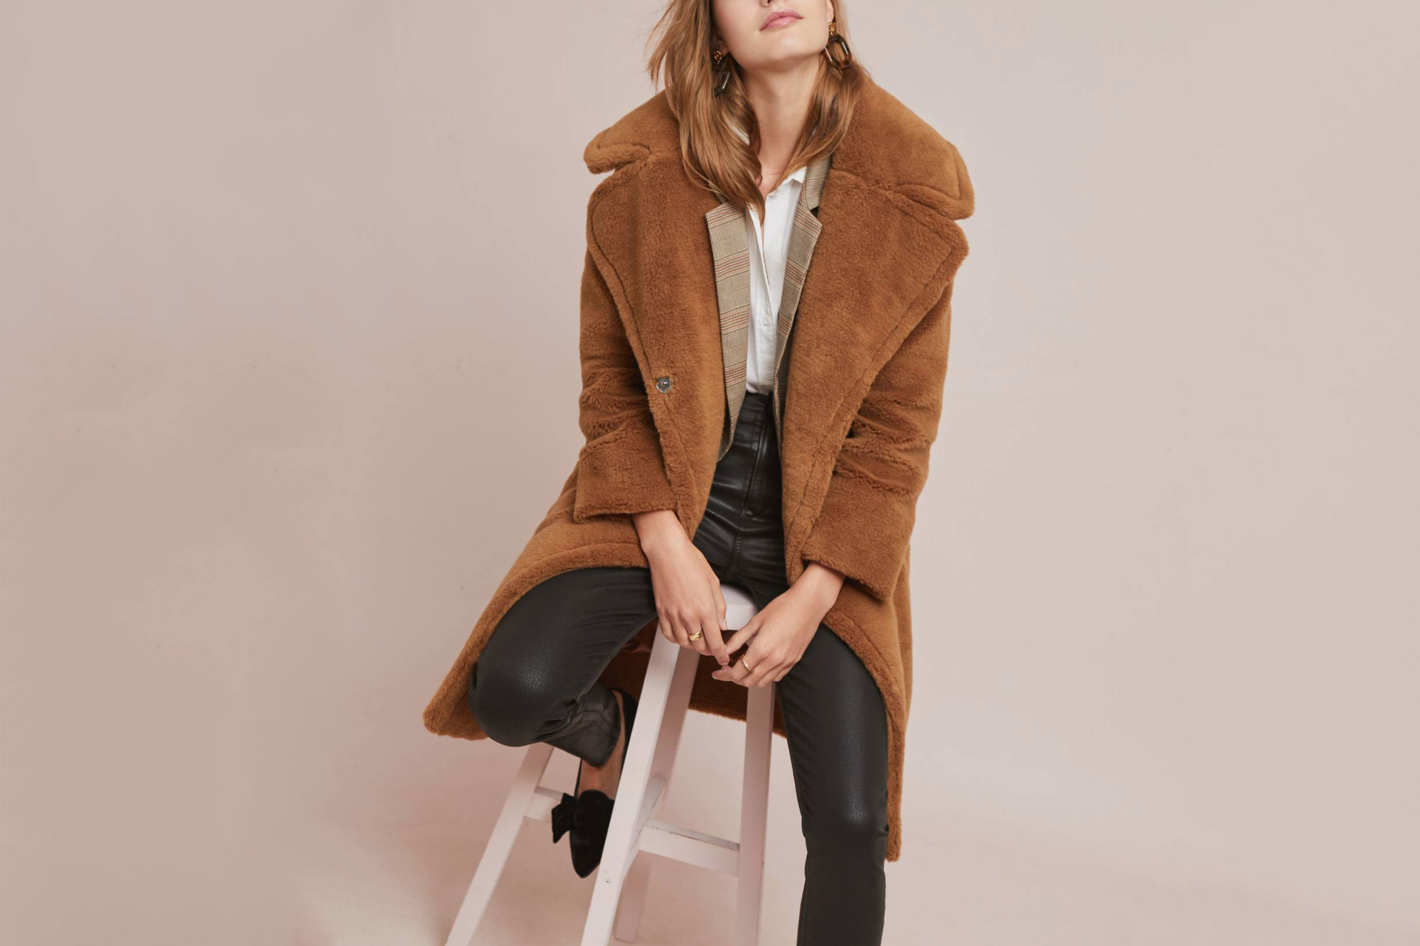 679456c1 $179 at And Other Stories. Buy · Anthropologie Teddy Faux Fur Coat